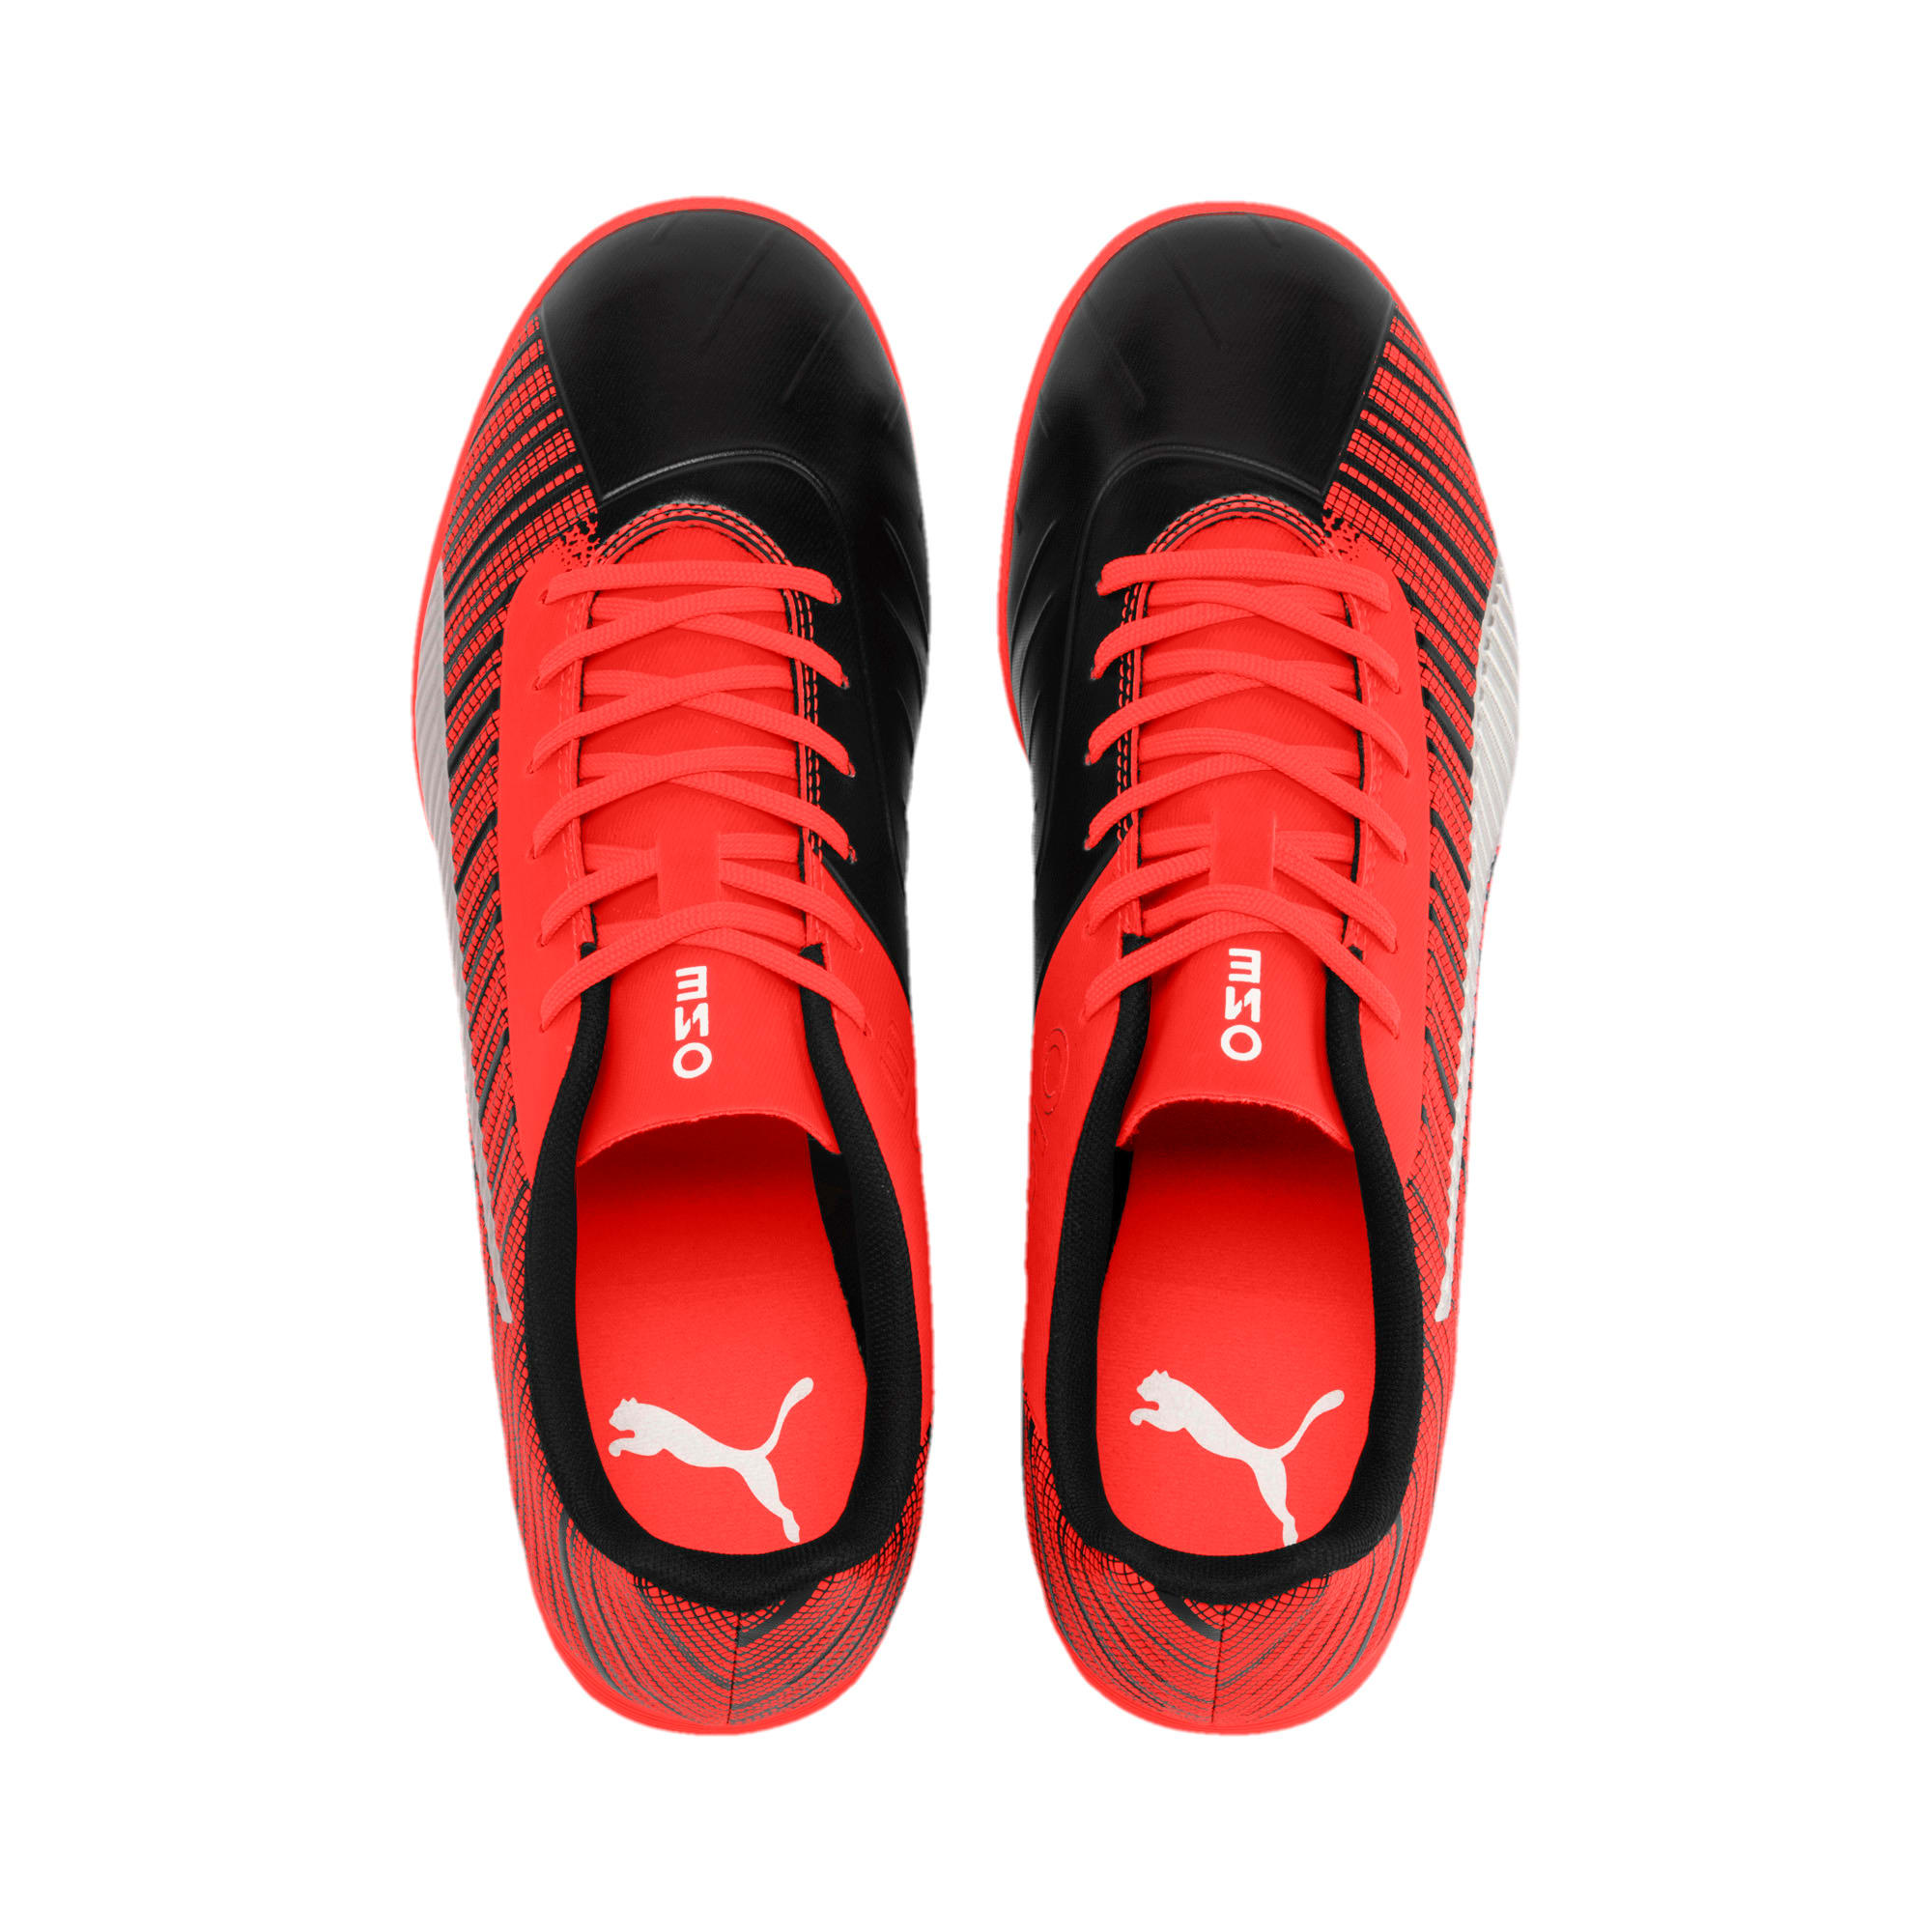 Thumbnail 8 of PUMA ONE 5.4 IT Men's Football Boots, Black-Nrgy Red-Aged Silver, medium-IND